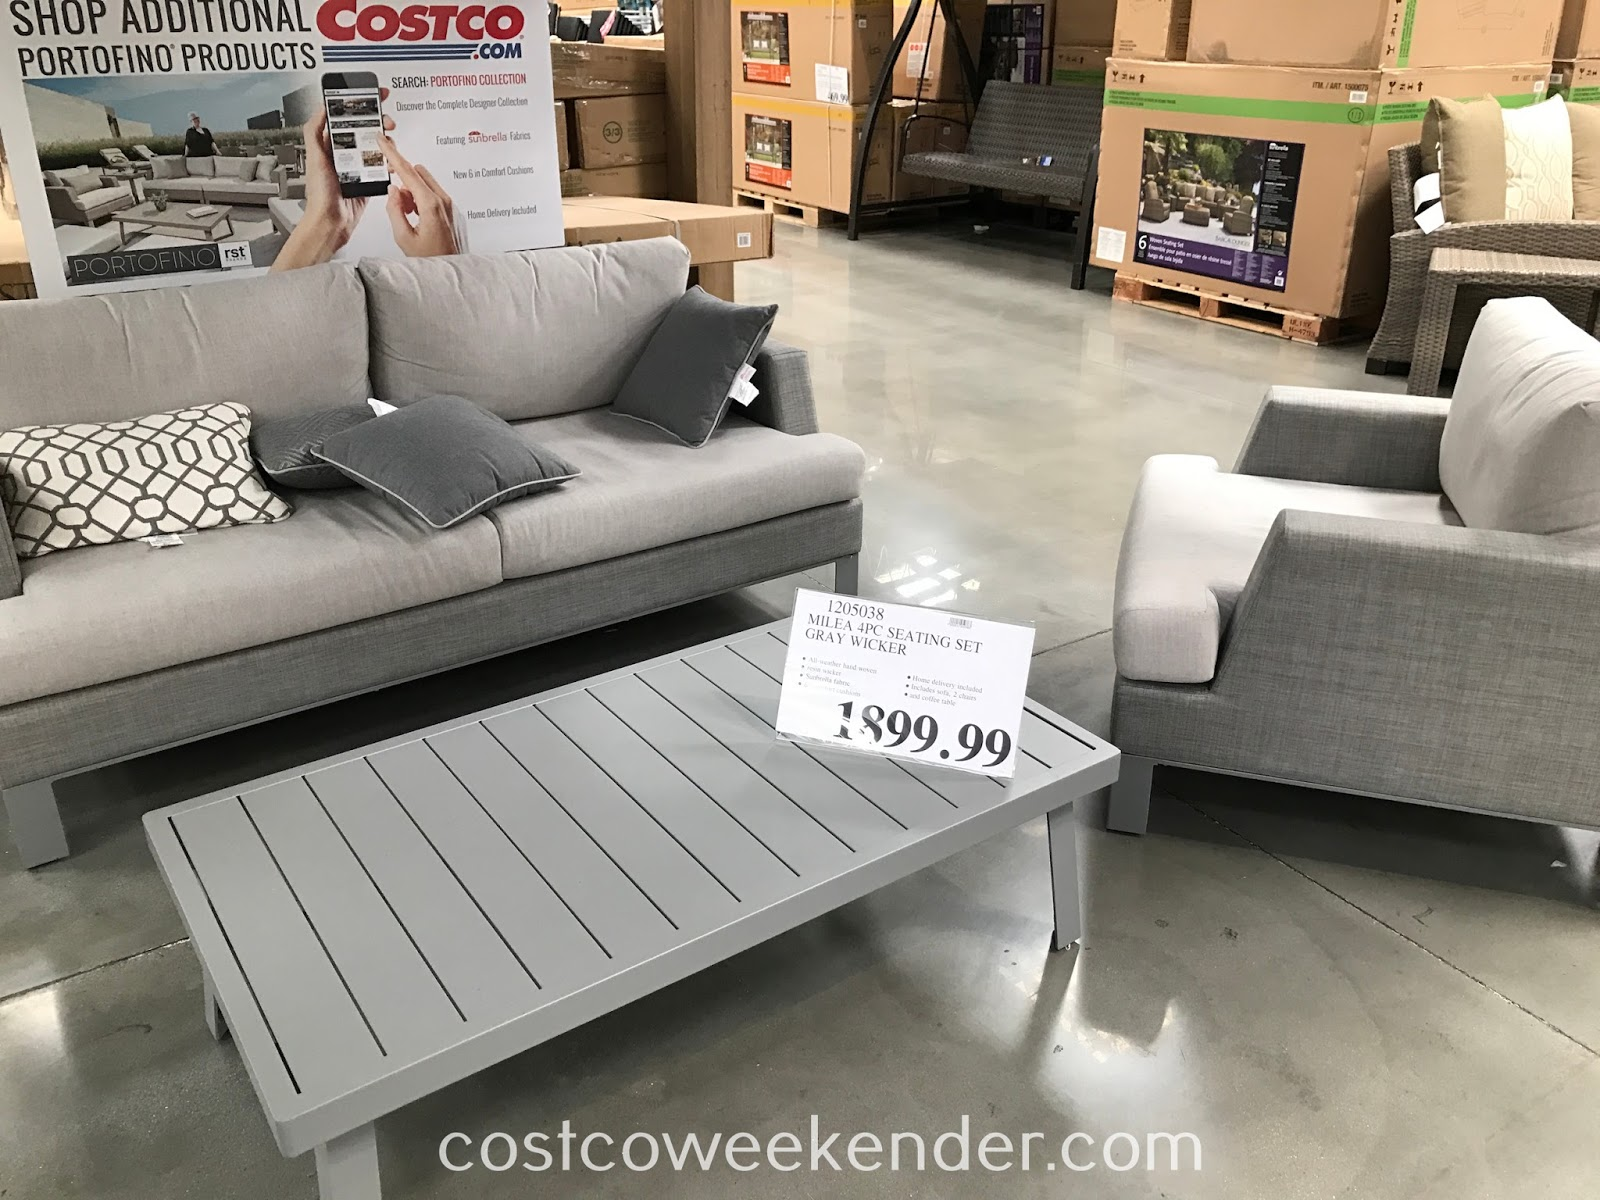 Enjoy lounging and being outside with the Milea 4pc Gray Wicker Seating Set